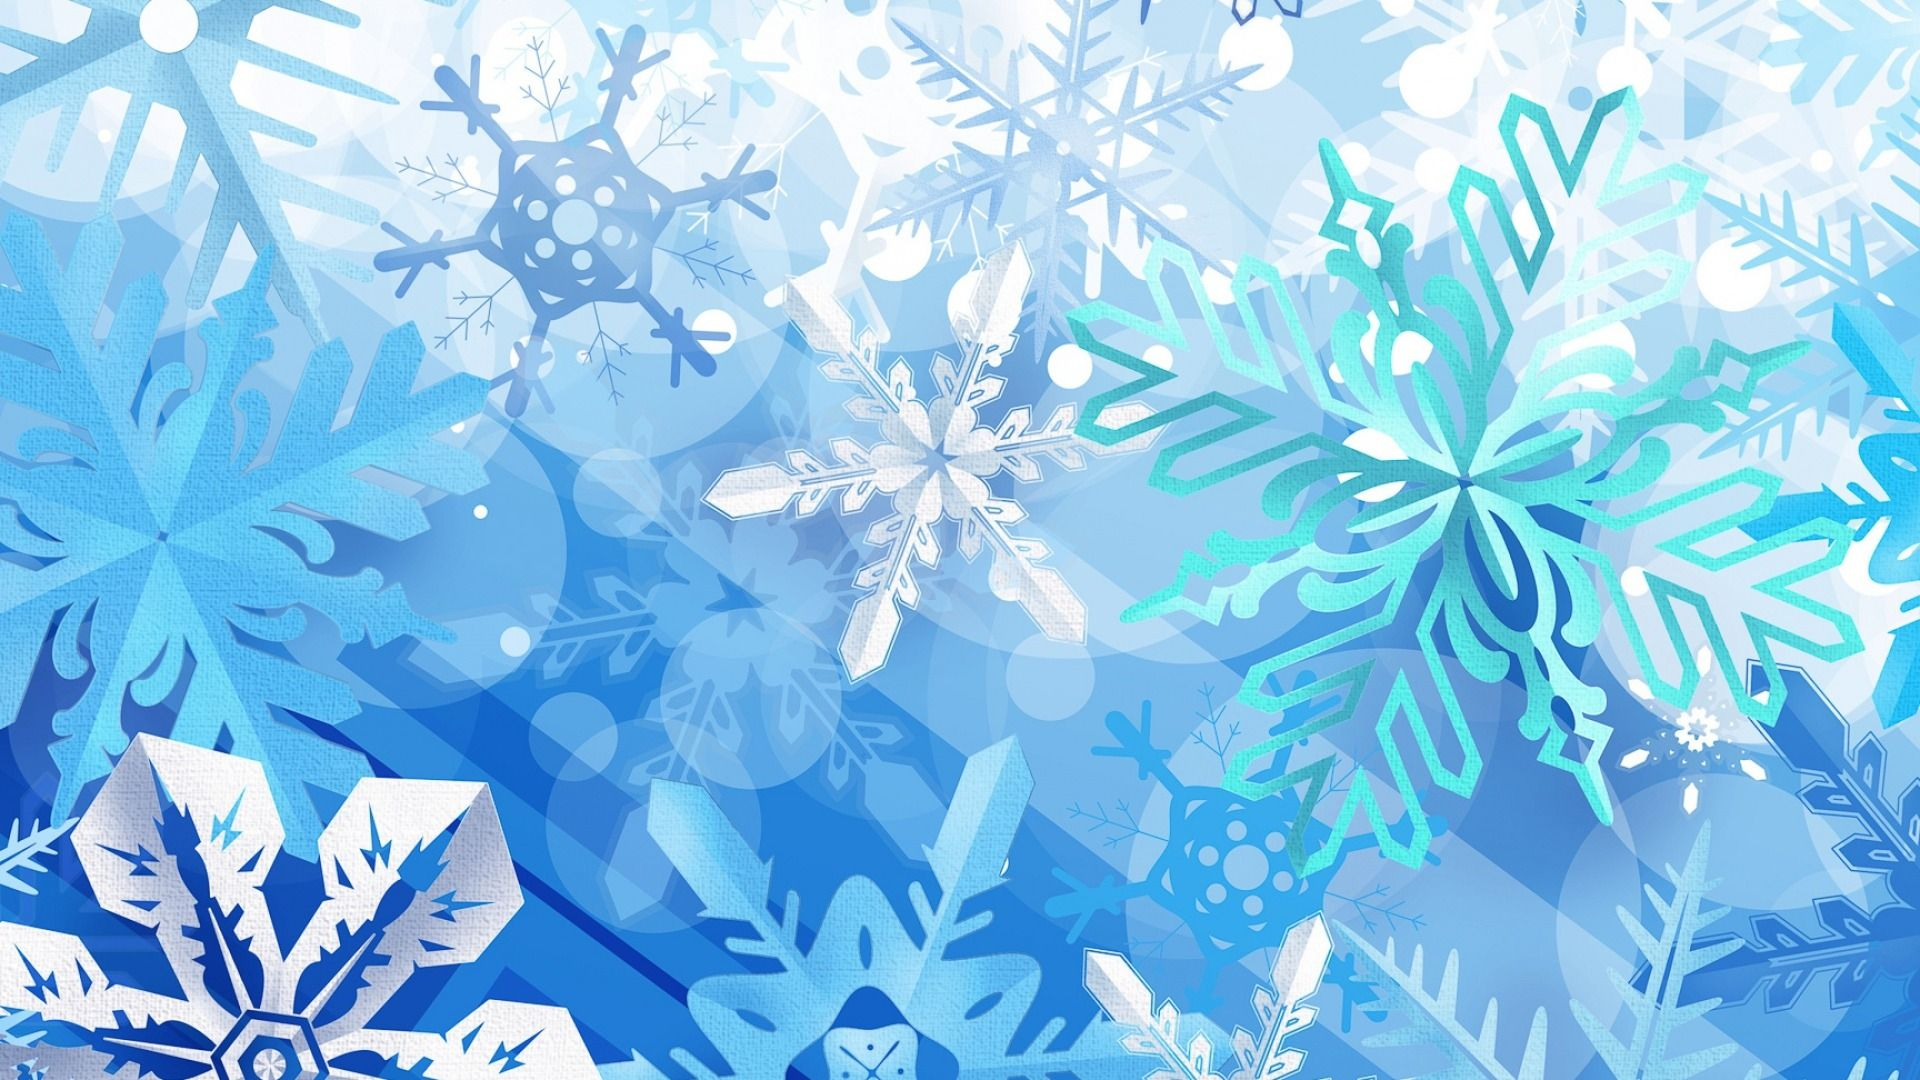 New Year With Snowflakes wallpaper and themes